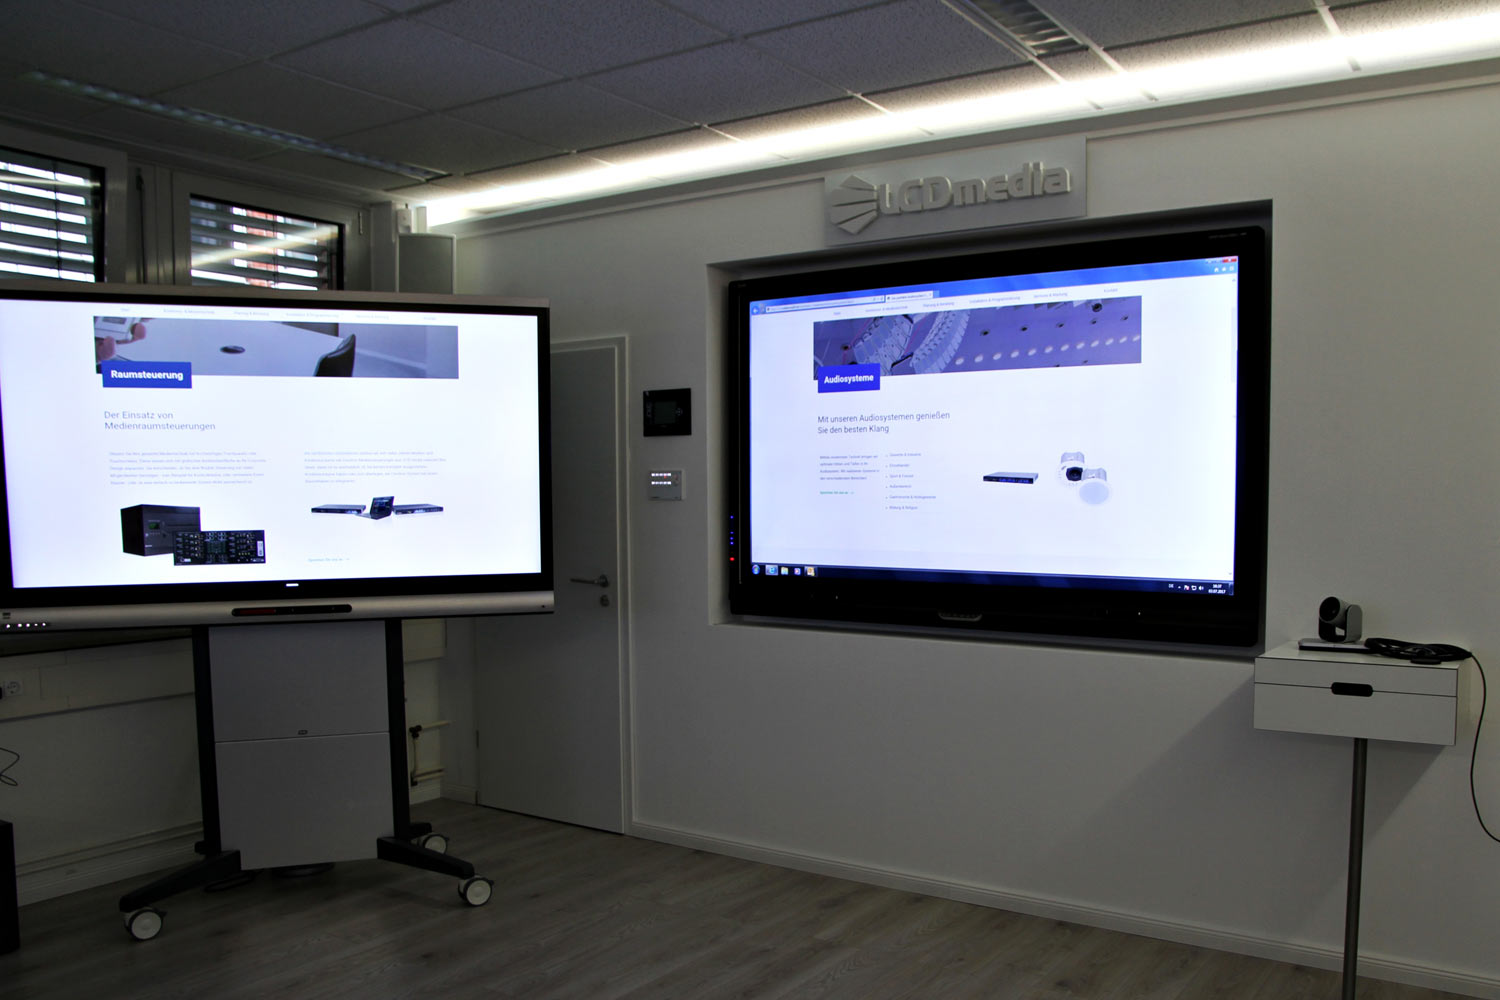 Showroom_konferenz-monitor_lcd-media_Hamburg.jpg